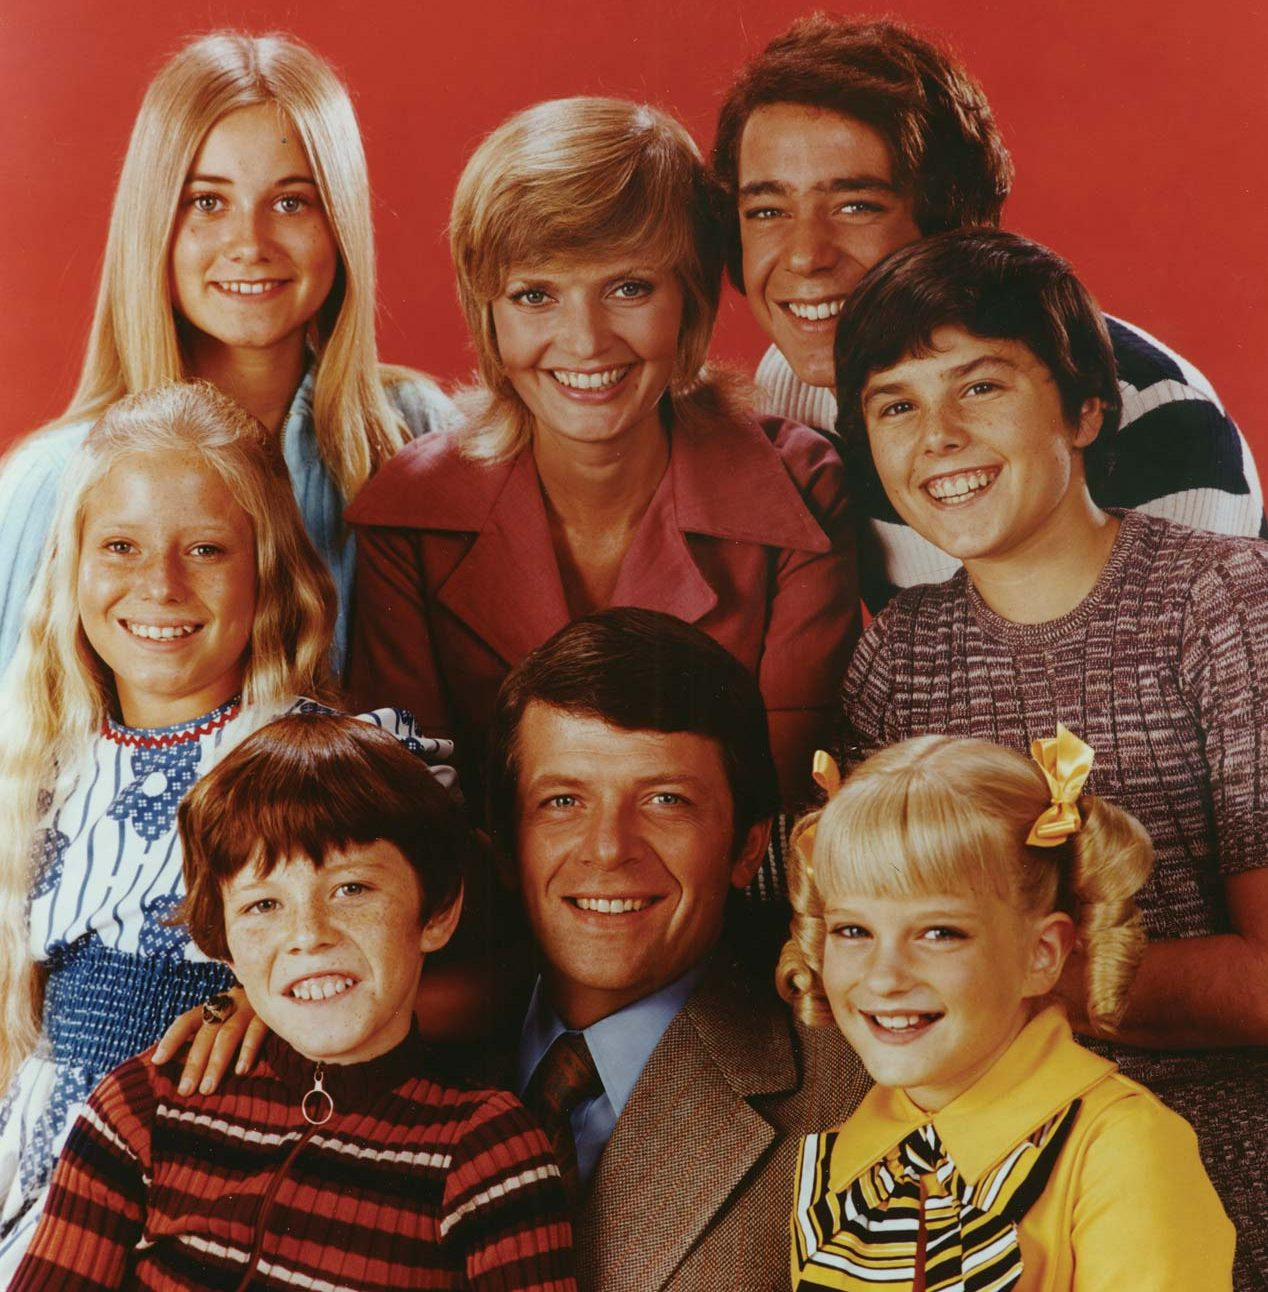 Maureen McCormick Florence Henderson Barry Williams Susan e1582281002972 20 TV-To-Movie Adaptations That Were Nothing Like The Series They Were Based On